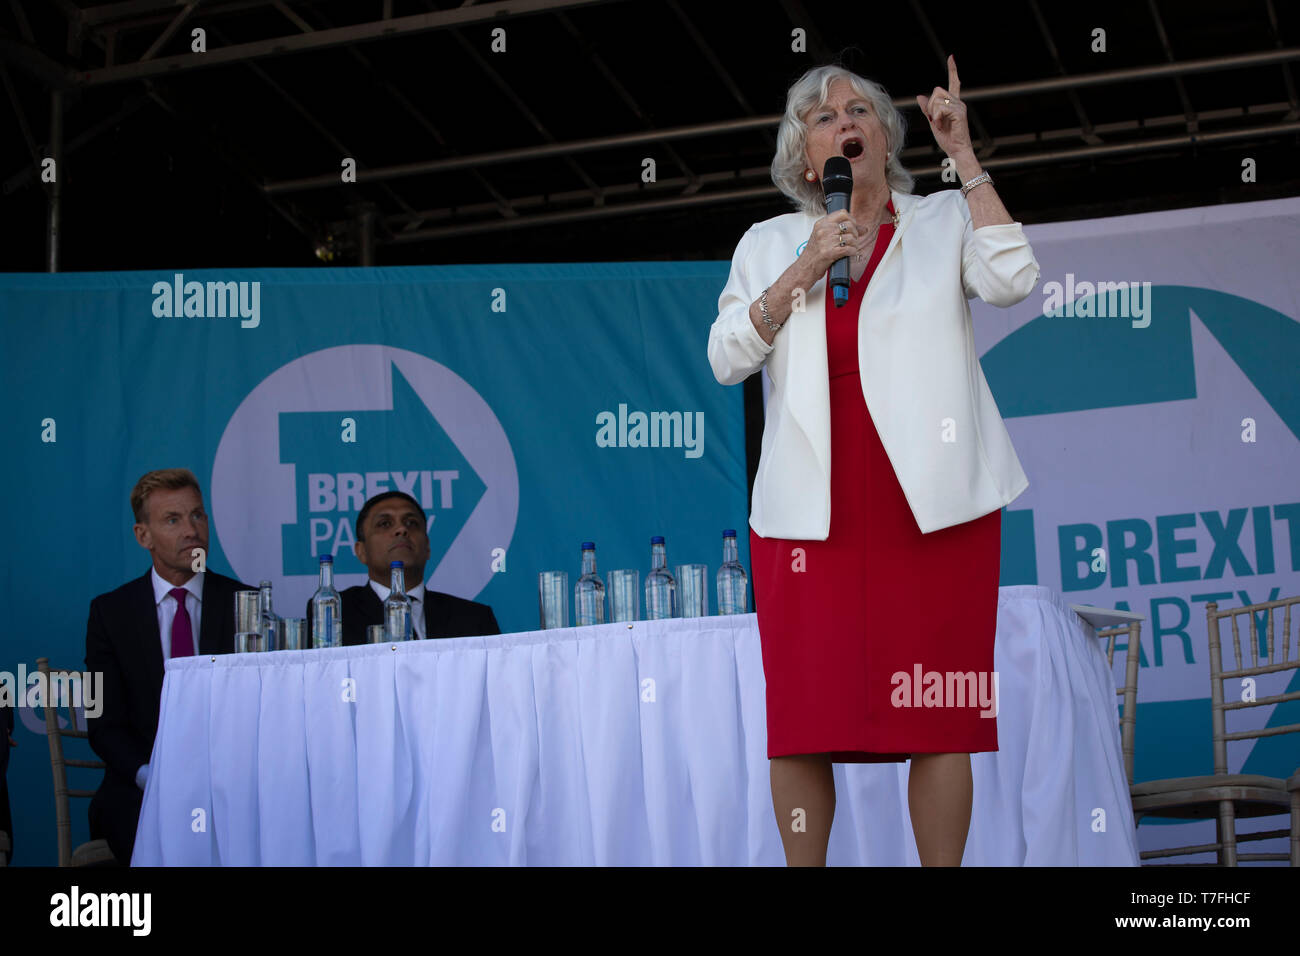 Former Conservative party government minister Ann Widdecombe speaking on stage at a Brexit Party event in Chester, Cheshire. The keynote speech was given by the Brexit Party leader Nigel Farage MEP. The event was attended by around 300 people and was one of the first since the formation of the Brexit Party by Nigel Farage in Spring 2019. Stock Photo